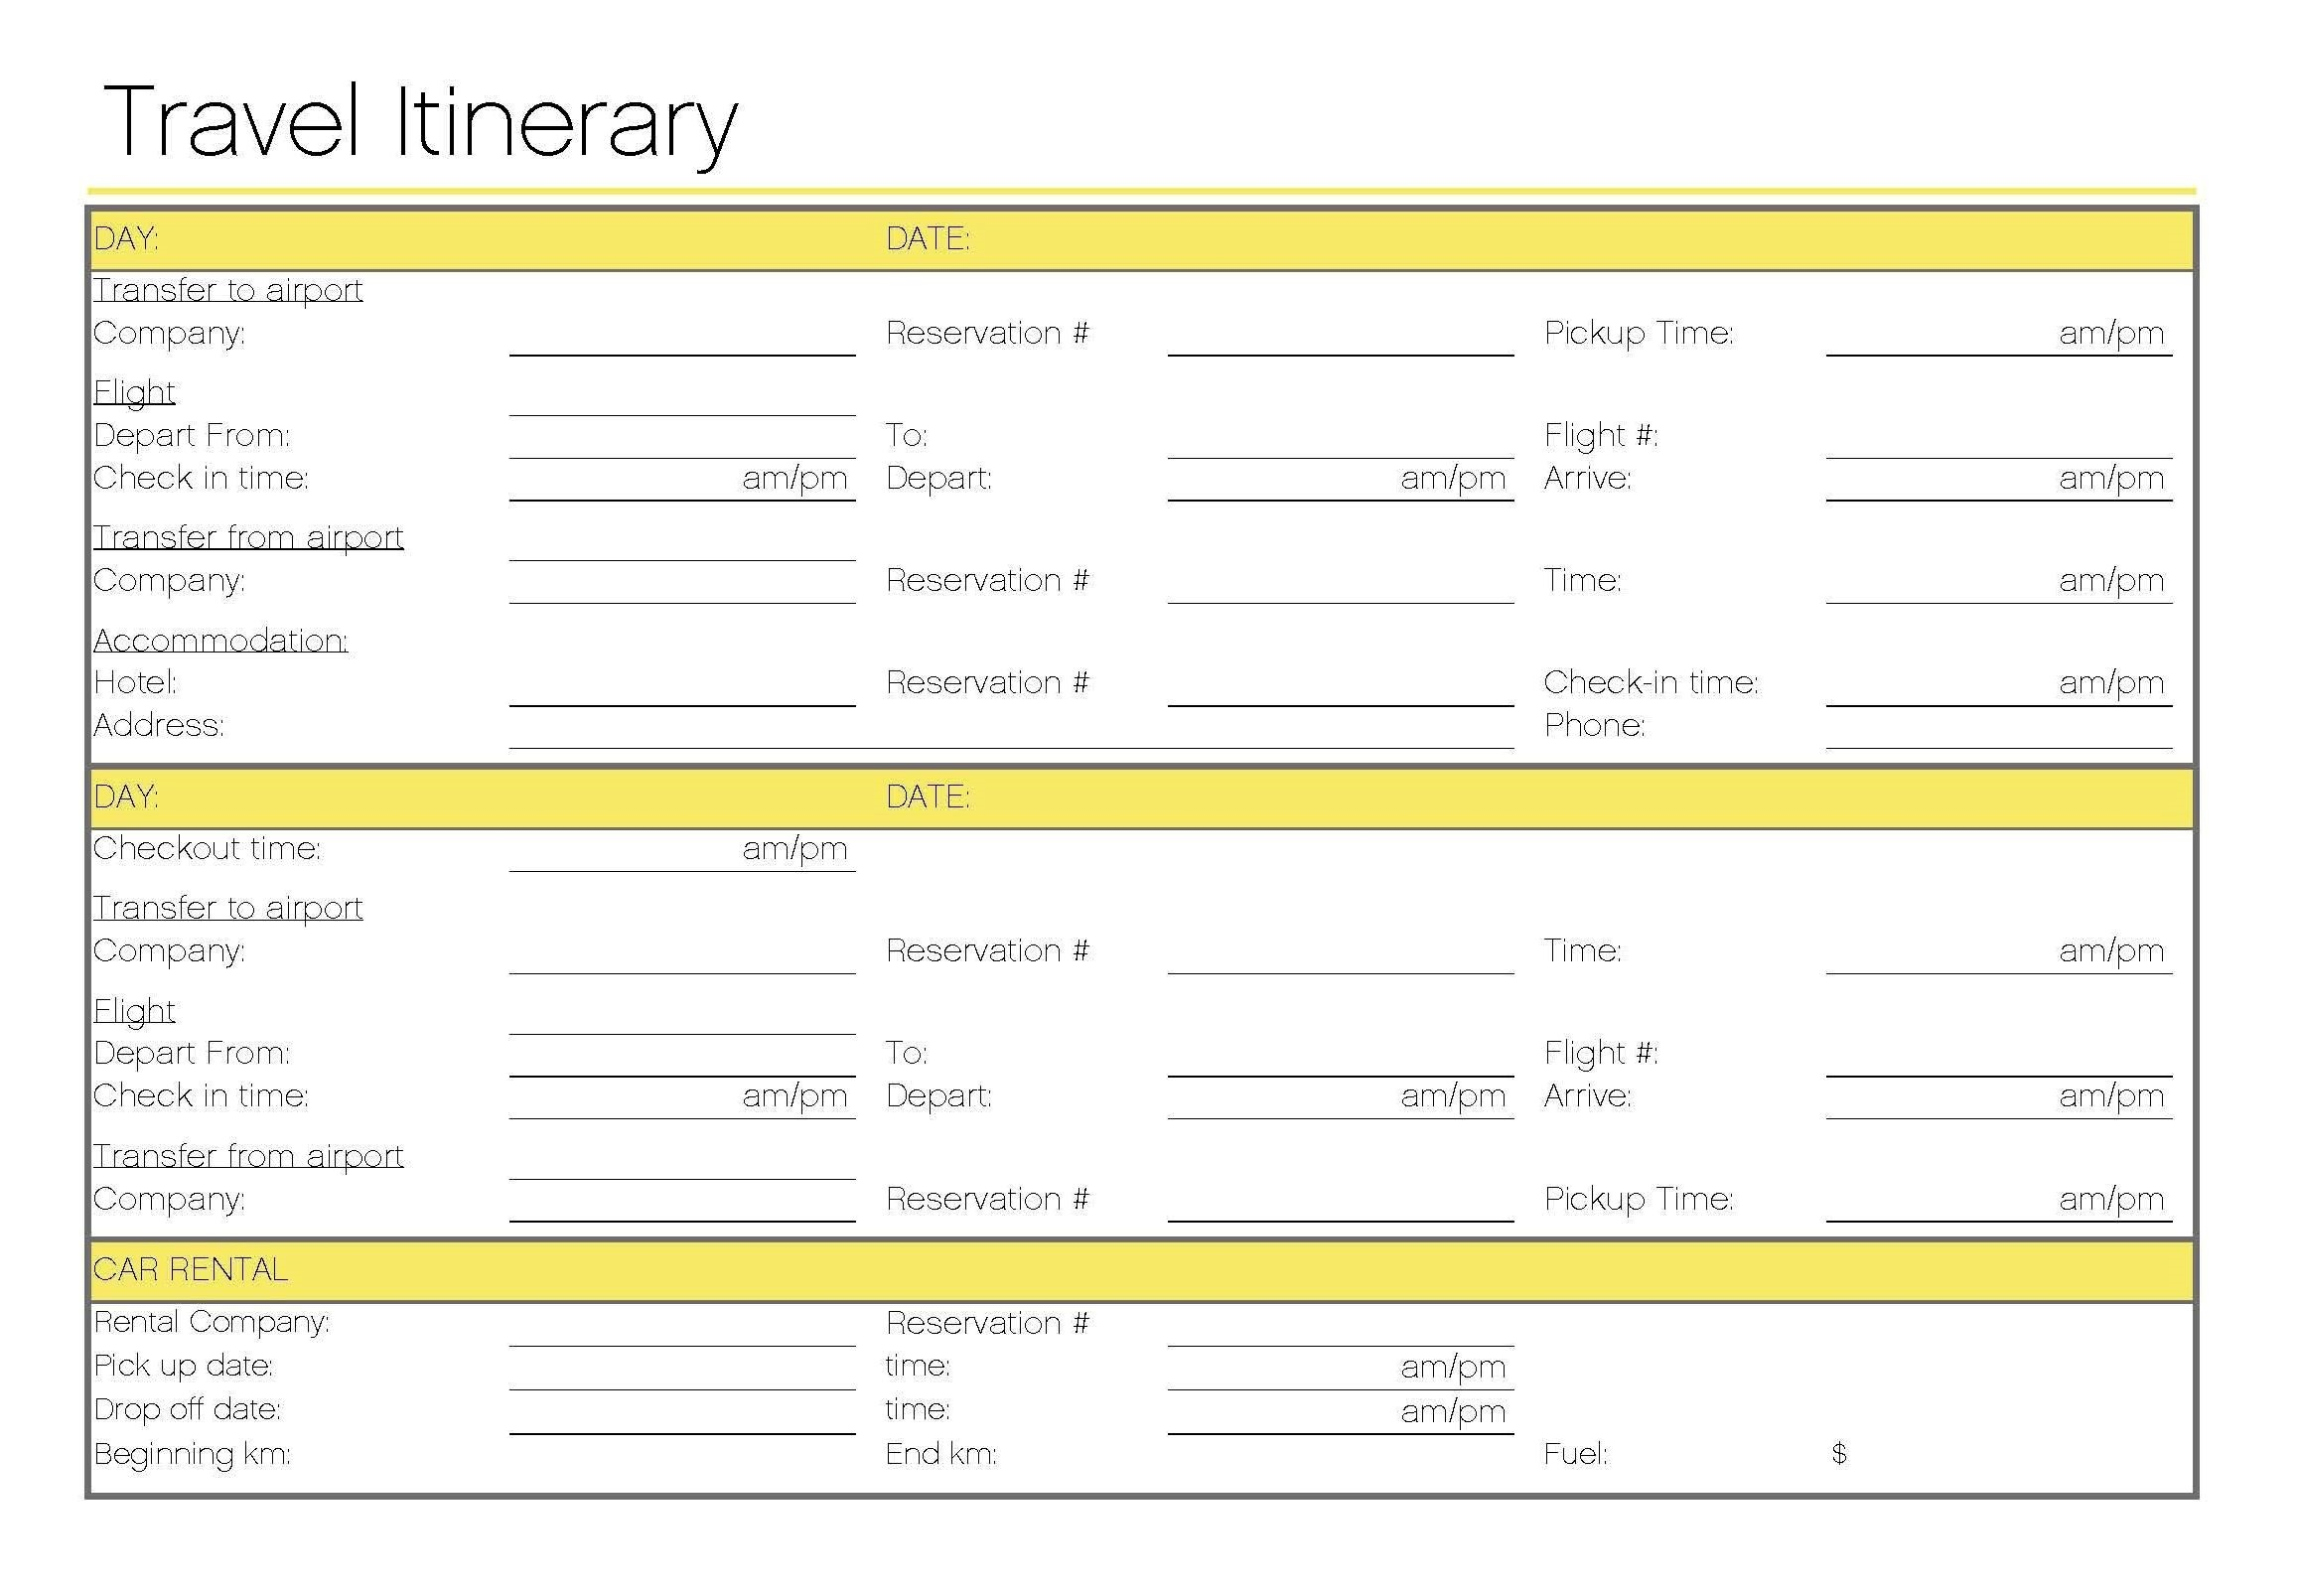 Business Trip Travel Itinerary Template